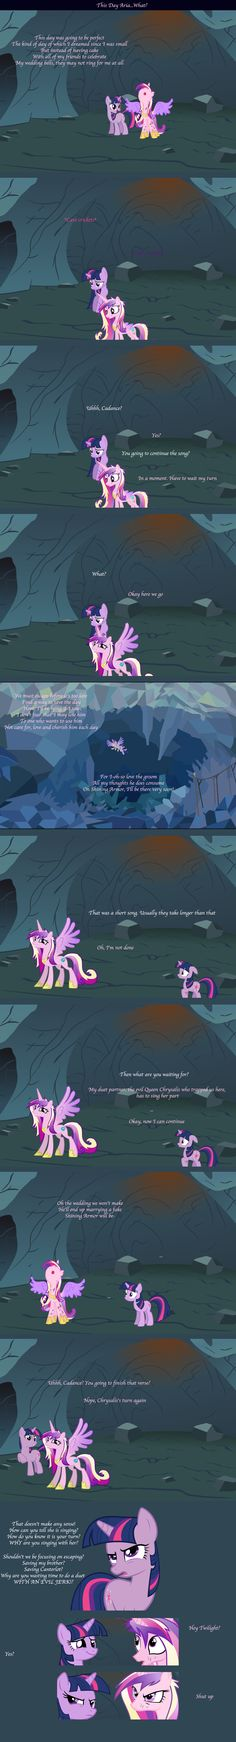 This Day Aria...What? by Thundercracker417.deviantart.com<--- finally. A duet by people in two different places is explained. Sort of.